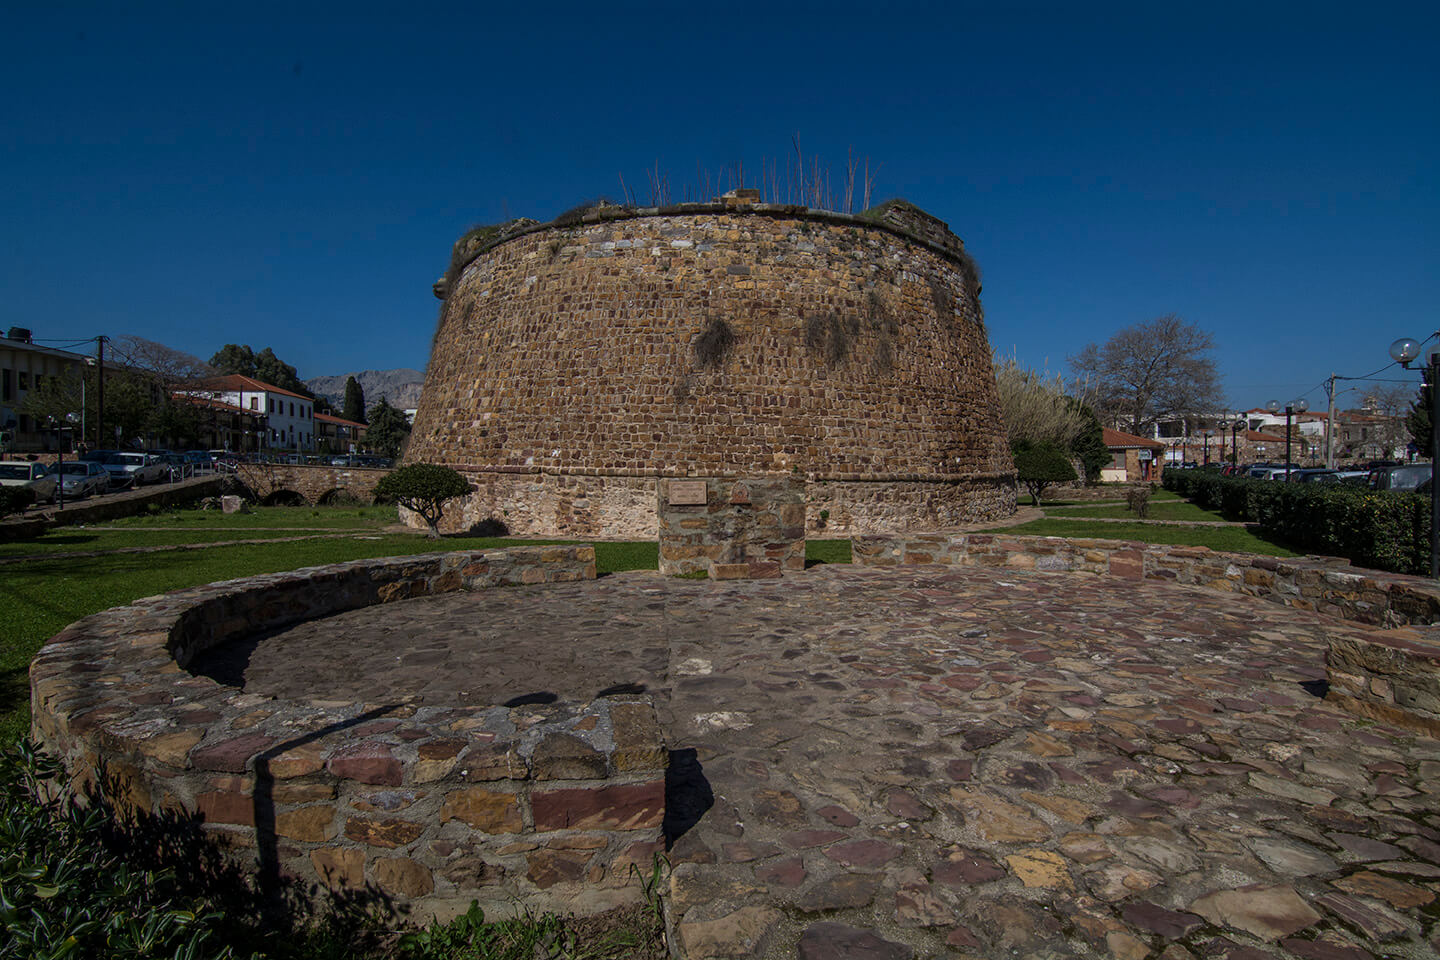 The castle of the Old City of Chios